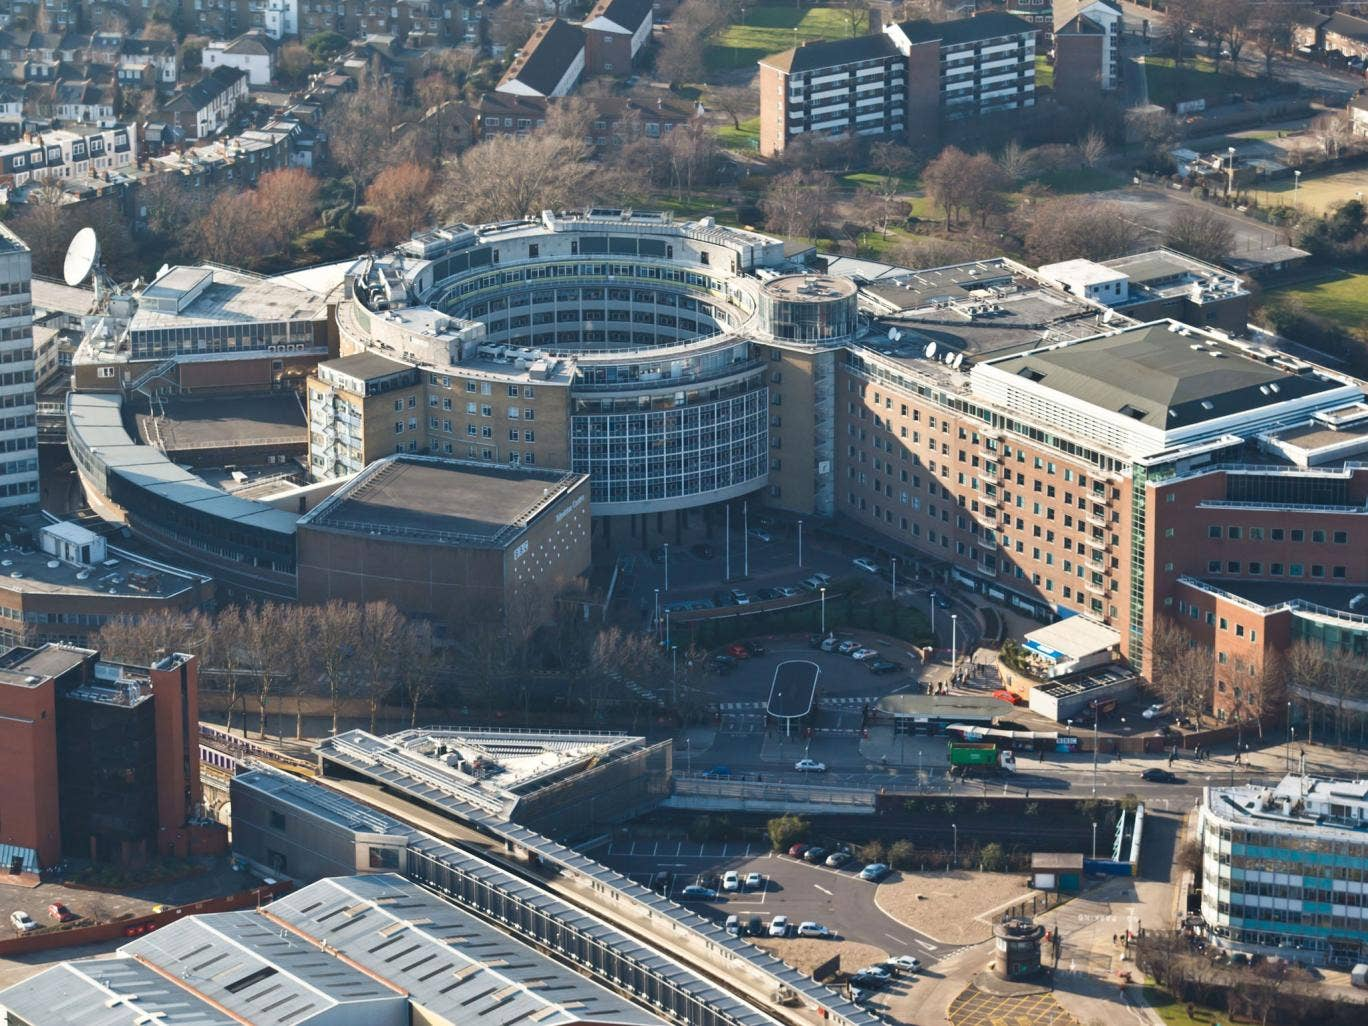 The soon-to-be-closed BBC Television Centre in Wood Lane